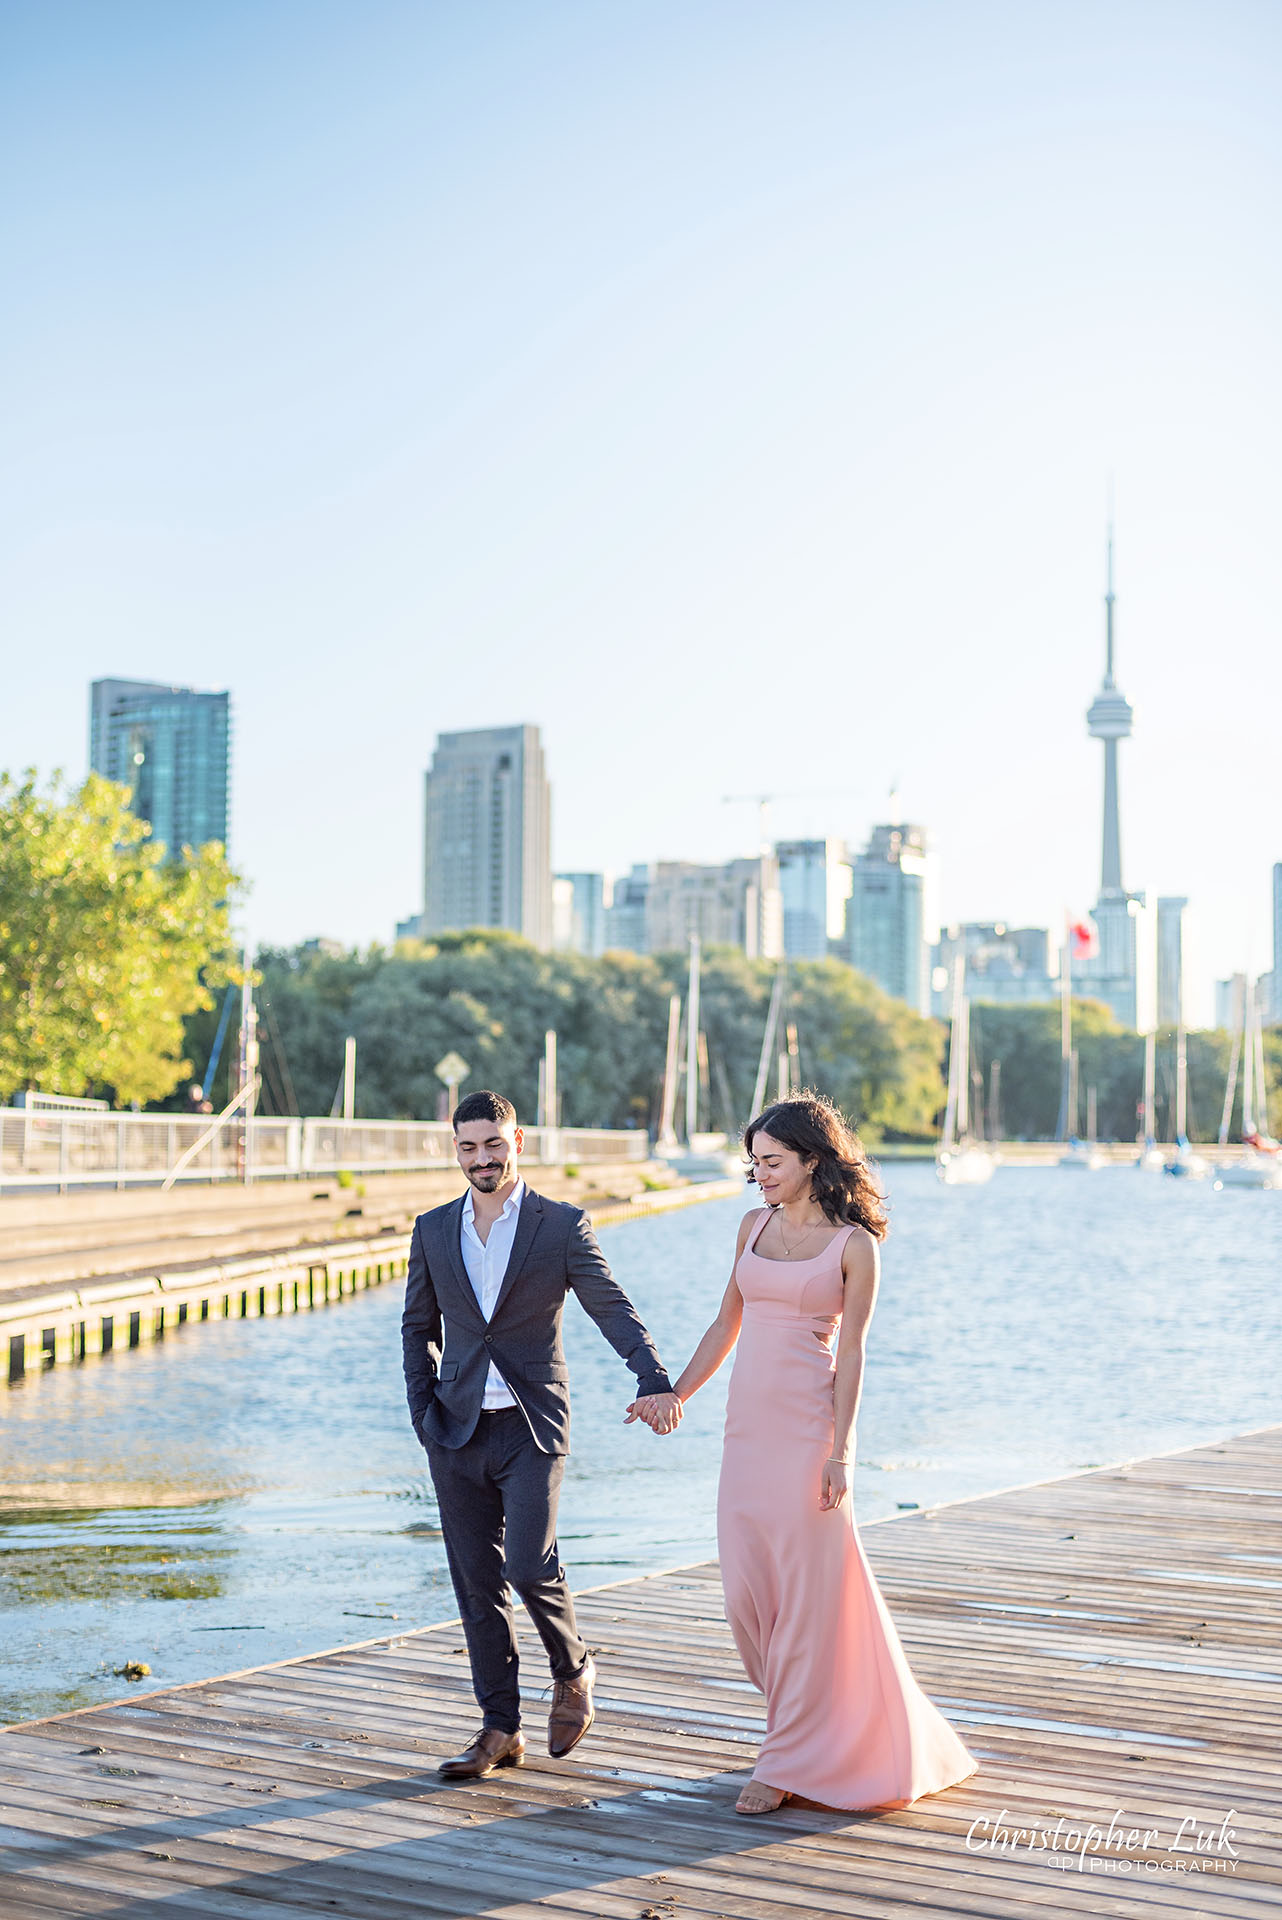 Christopher Luk Trillium Park Ontario Place Waterfront Engagement Session Toronto Wedding Photographer Bride Groom Natural Candid Photojournalistic Boat Dock CN Tower Skyline Background Sunrise Kiss Vertical Portrait Hotel X